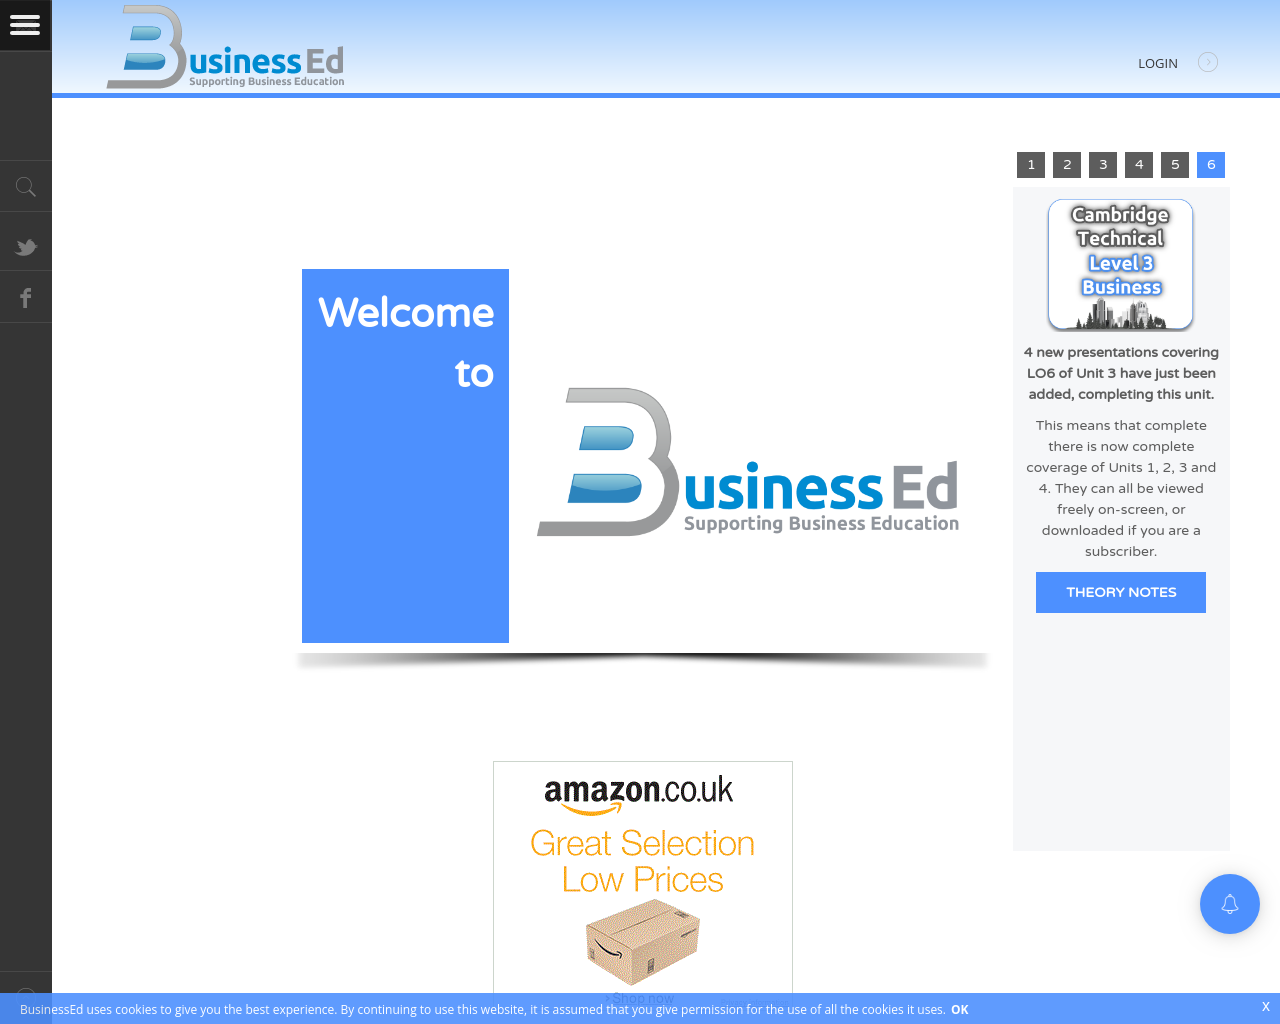 BussinessEd Website